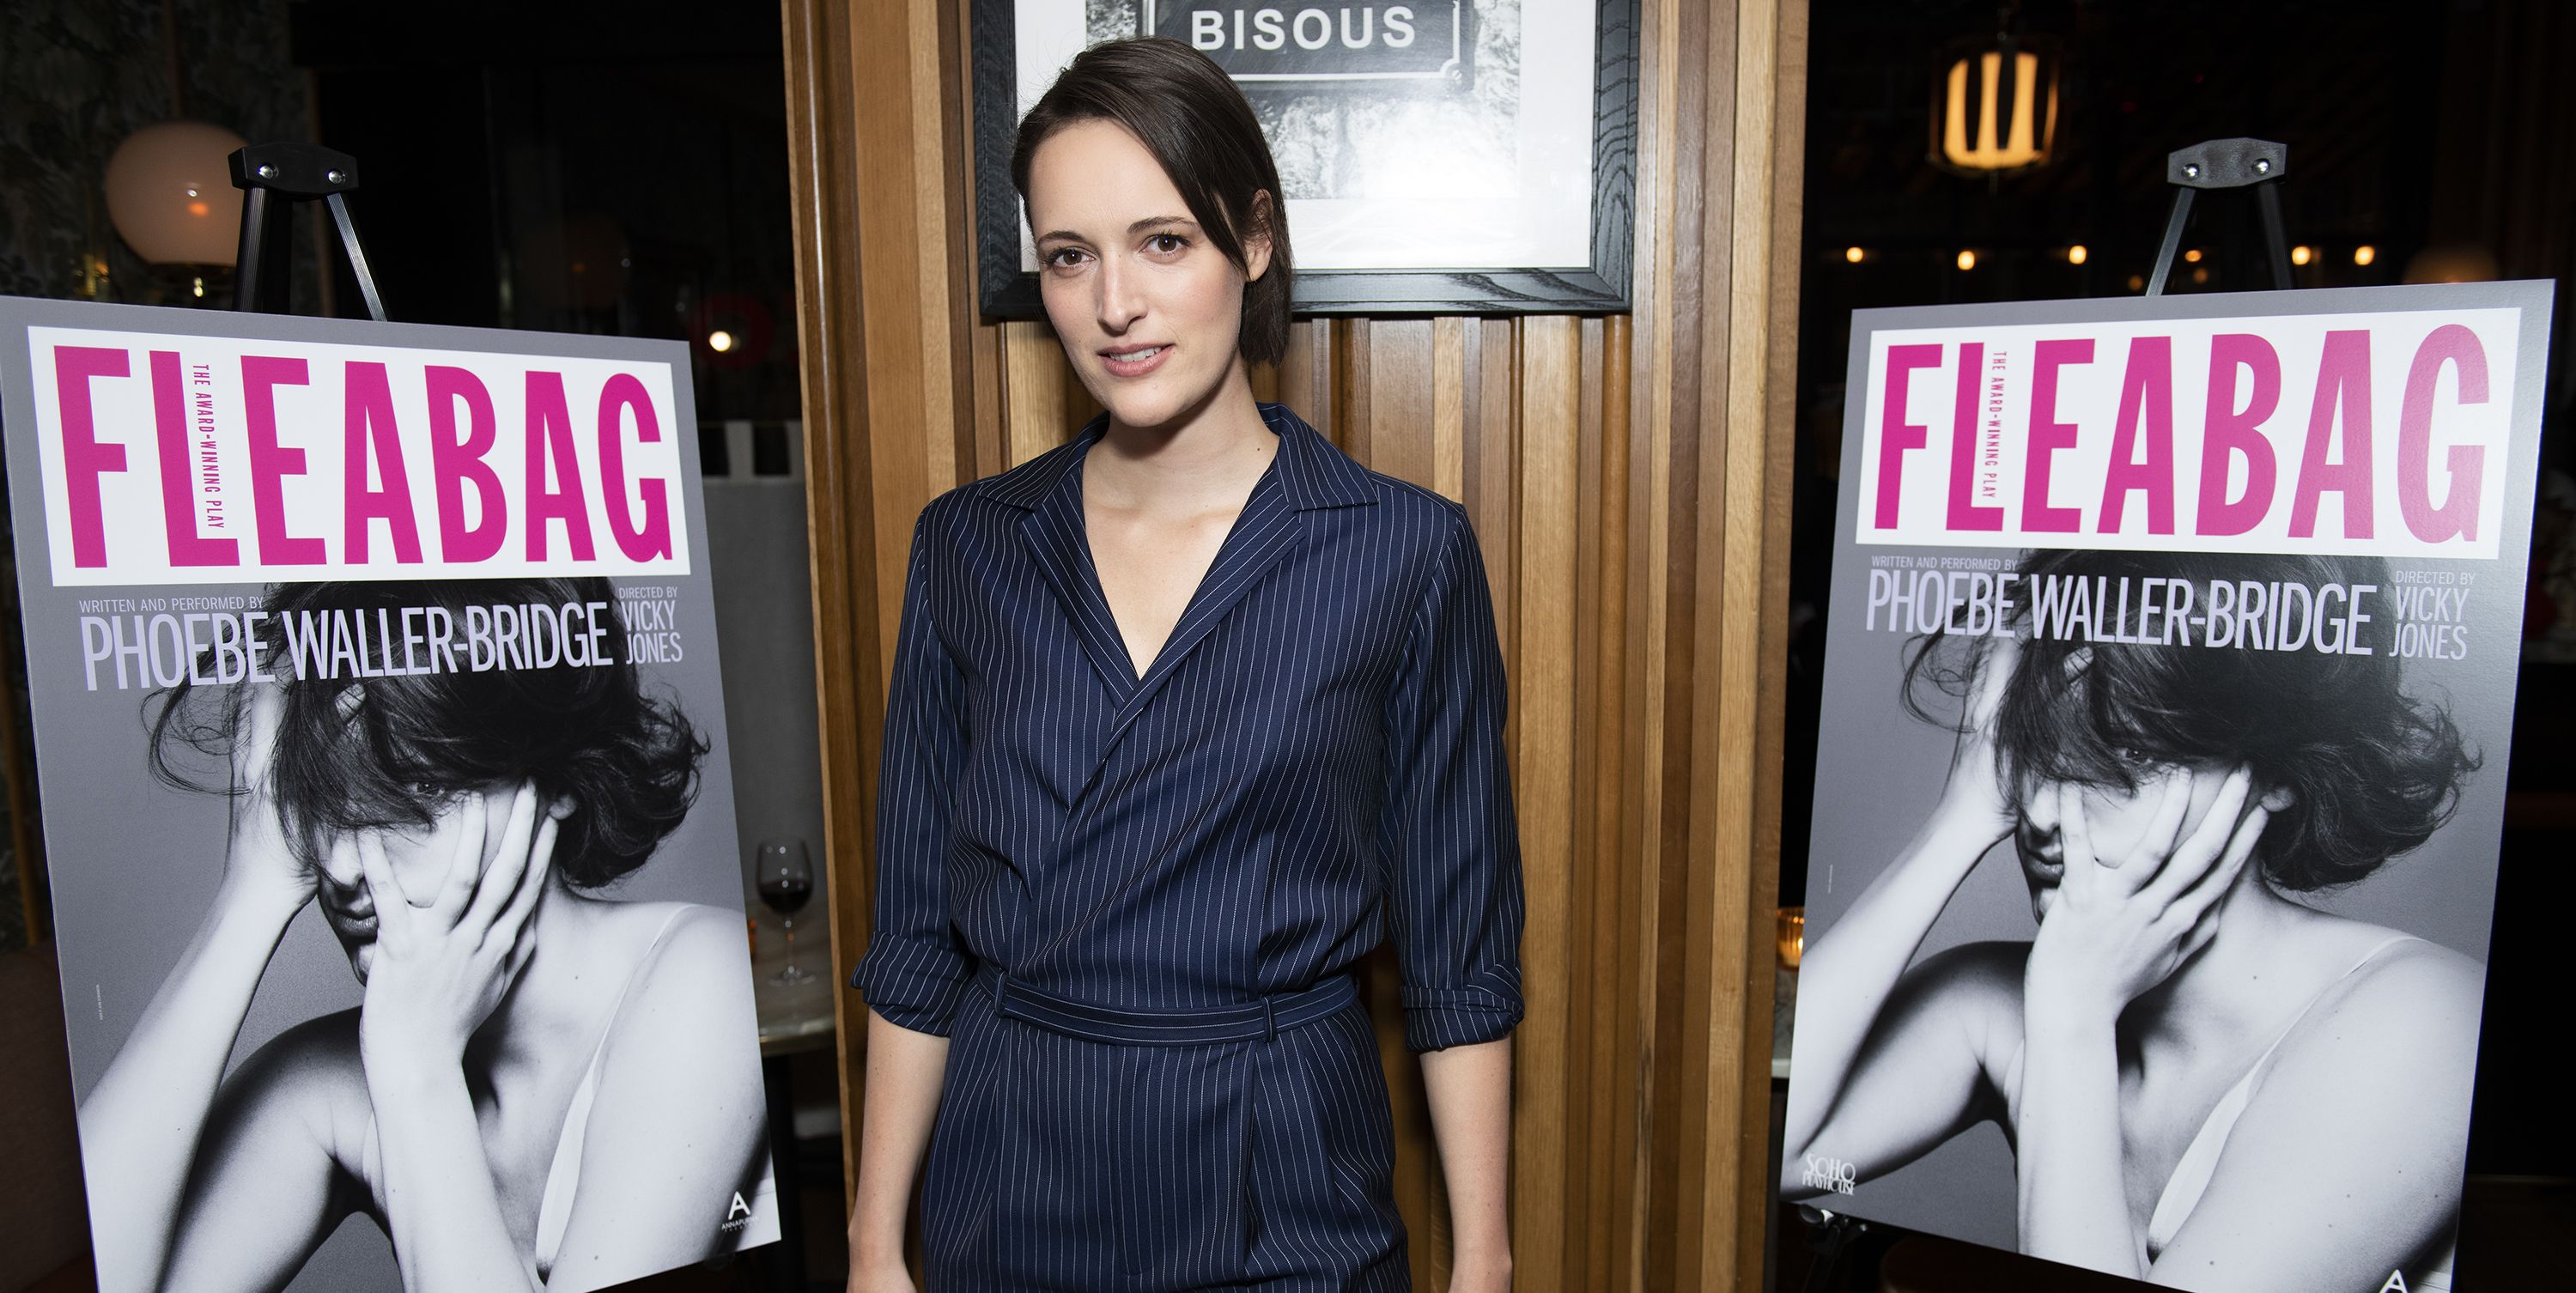 Phoebe Waller-Bridge, who developed Killing Eve for TV, and created the BBC show Fleabag, was reportedly tapped to punch up the script for the next Bond film—at Daniel Craig's request.